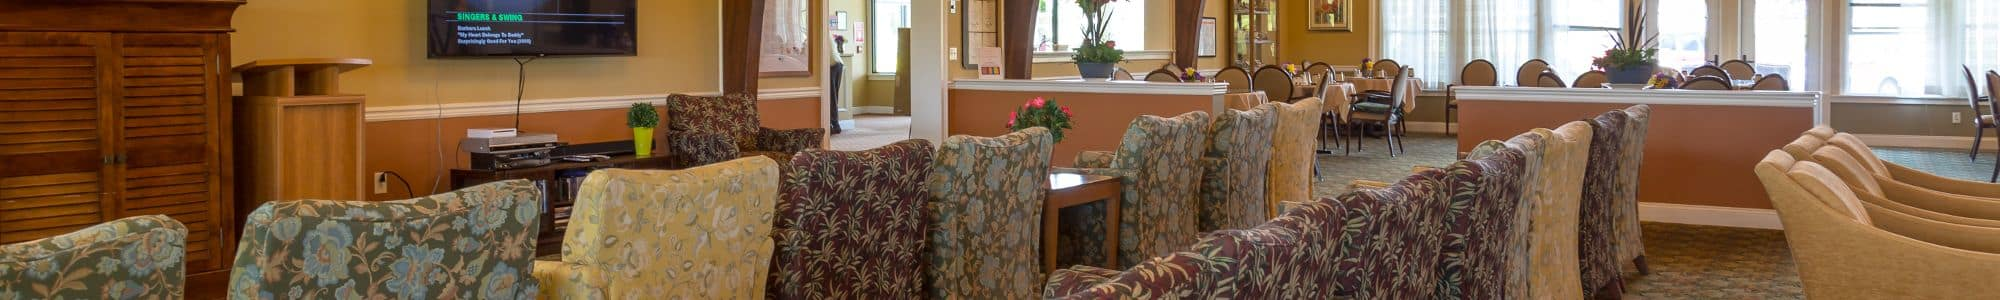 RSVP to an event at Bentley Assisted Living at Branchville in Branchville, NJ